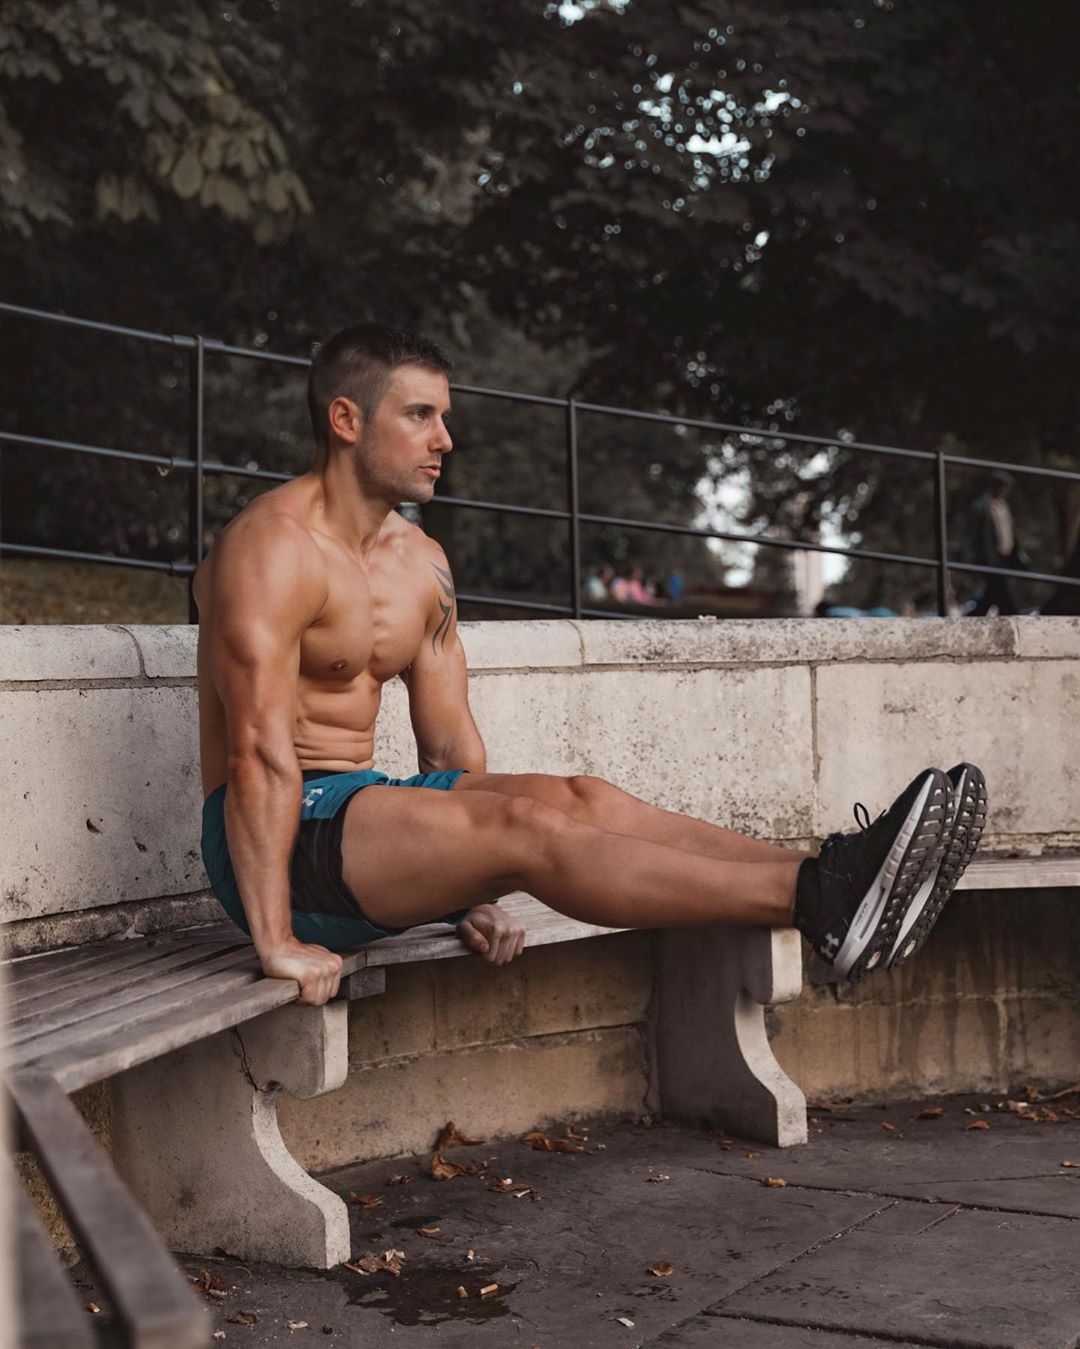 Alex Crockford | Man swimming, Fitness model, Mens fitness